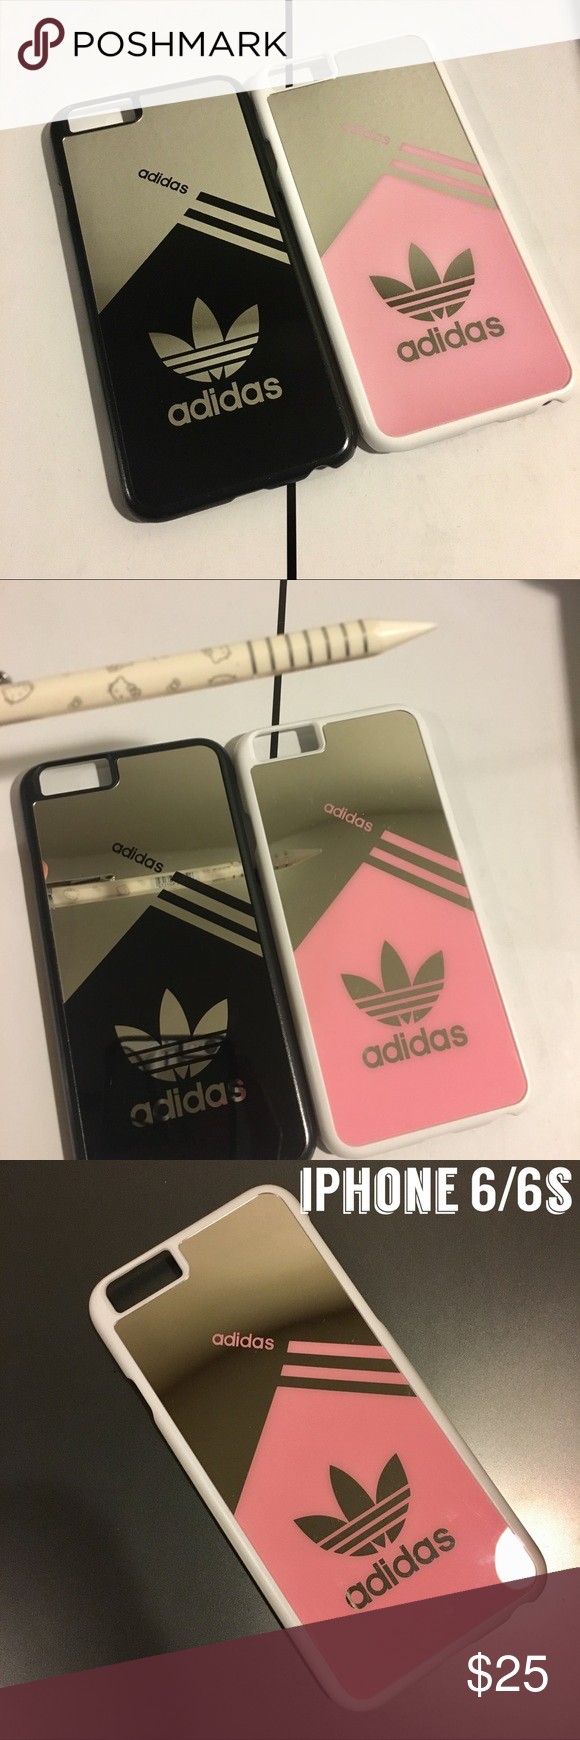 """new product c08f5 bb432 Power Couple"""" iPhone 6/6s Hard Reflective Cases 2 for $25 1 Pink ..."""